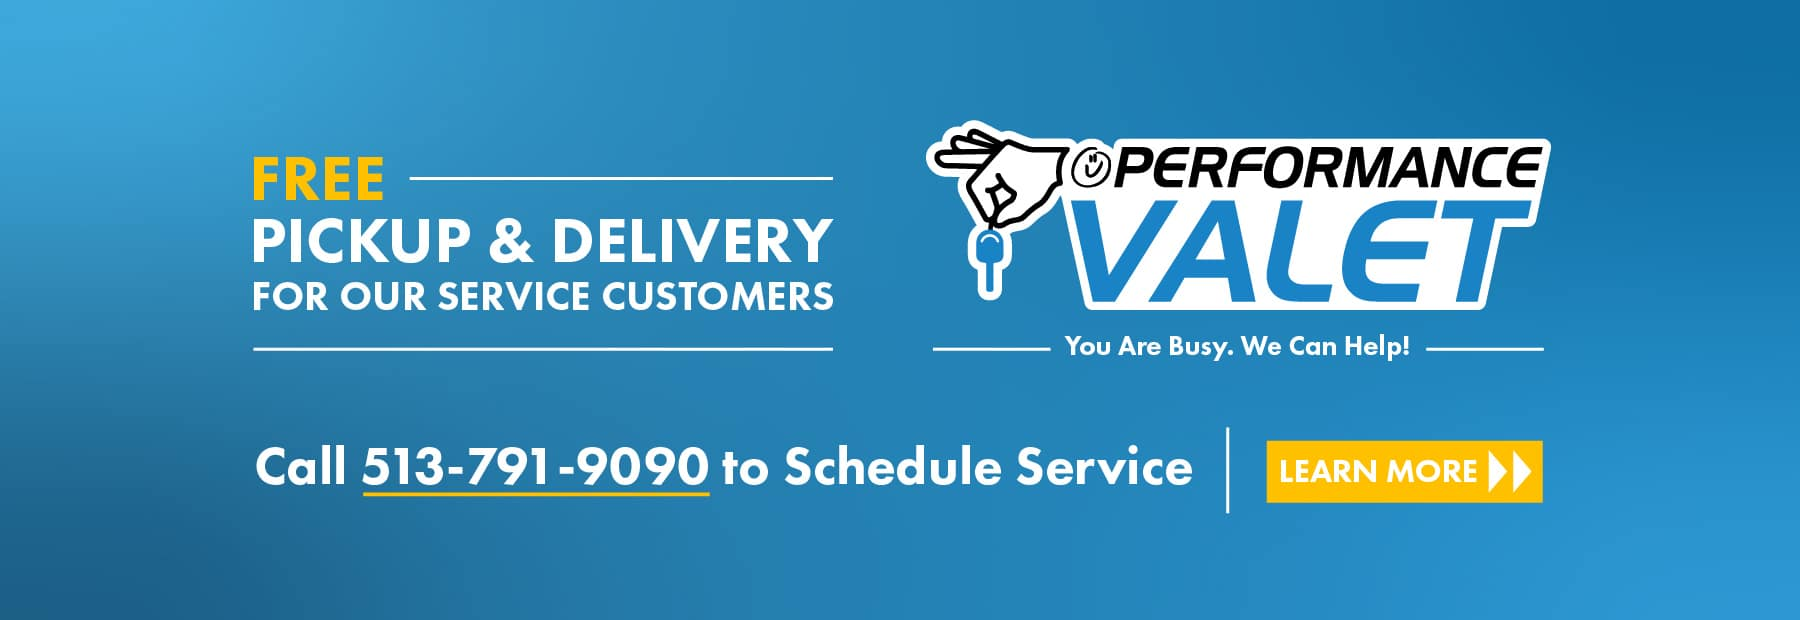 Performance Valet Pickup and Delivery